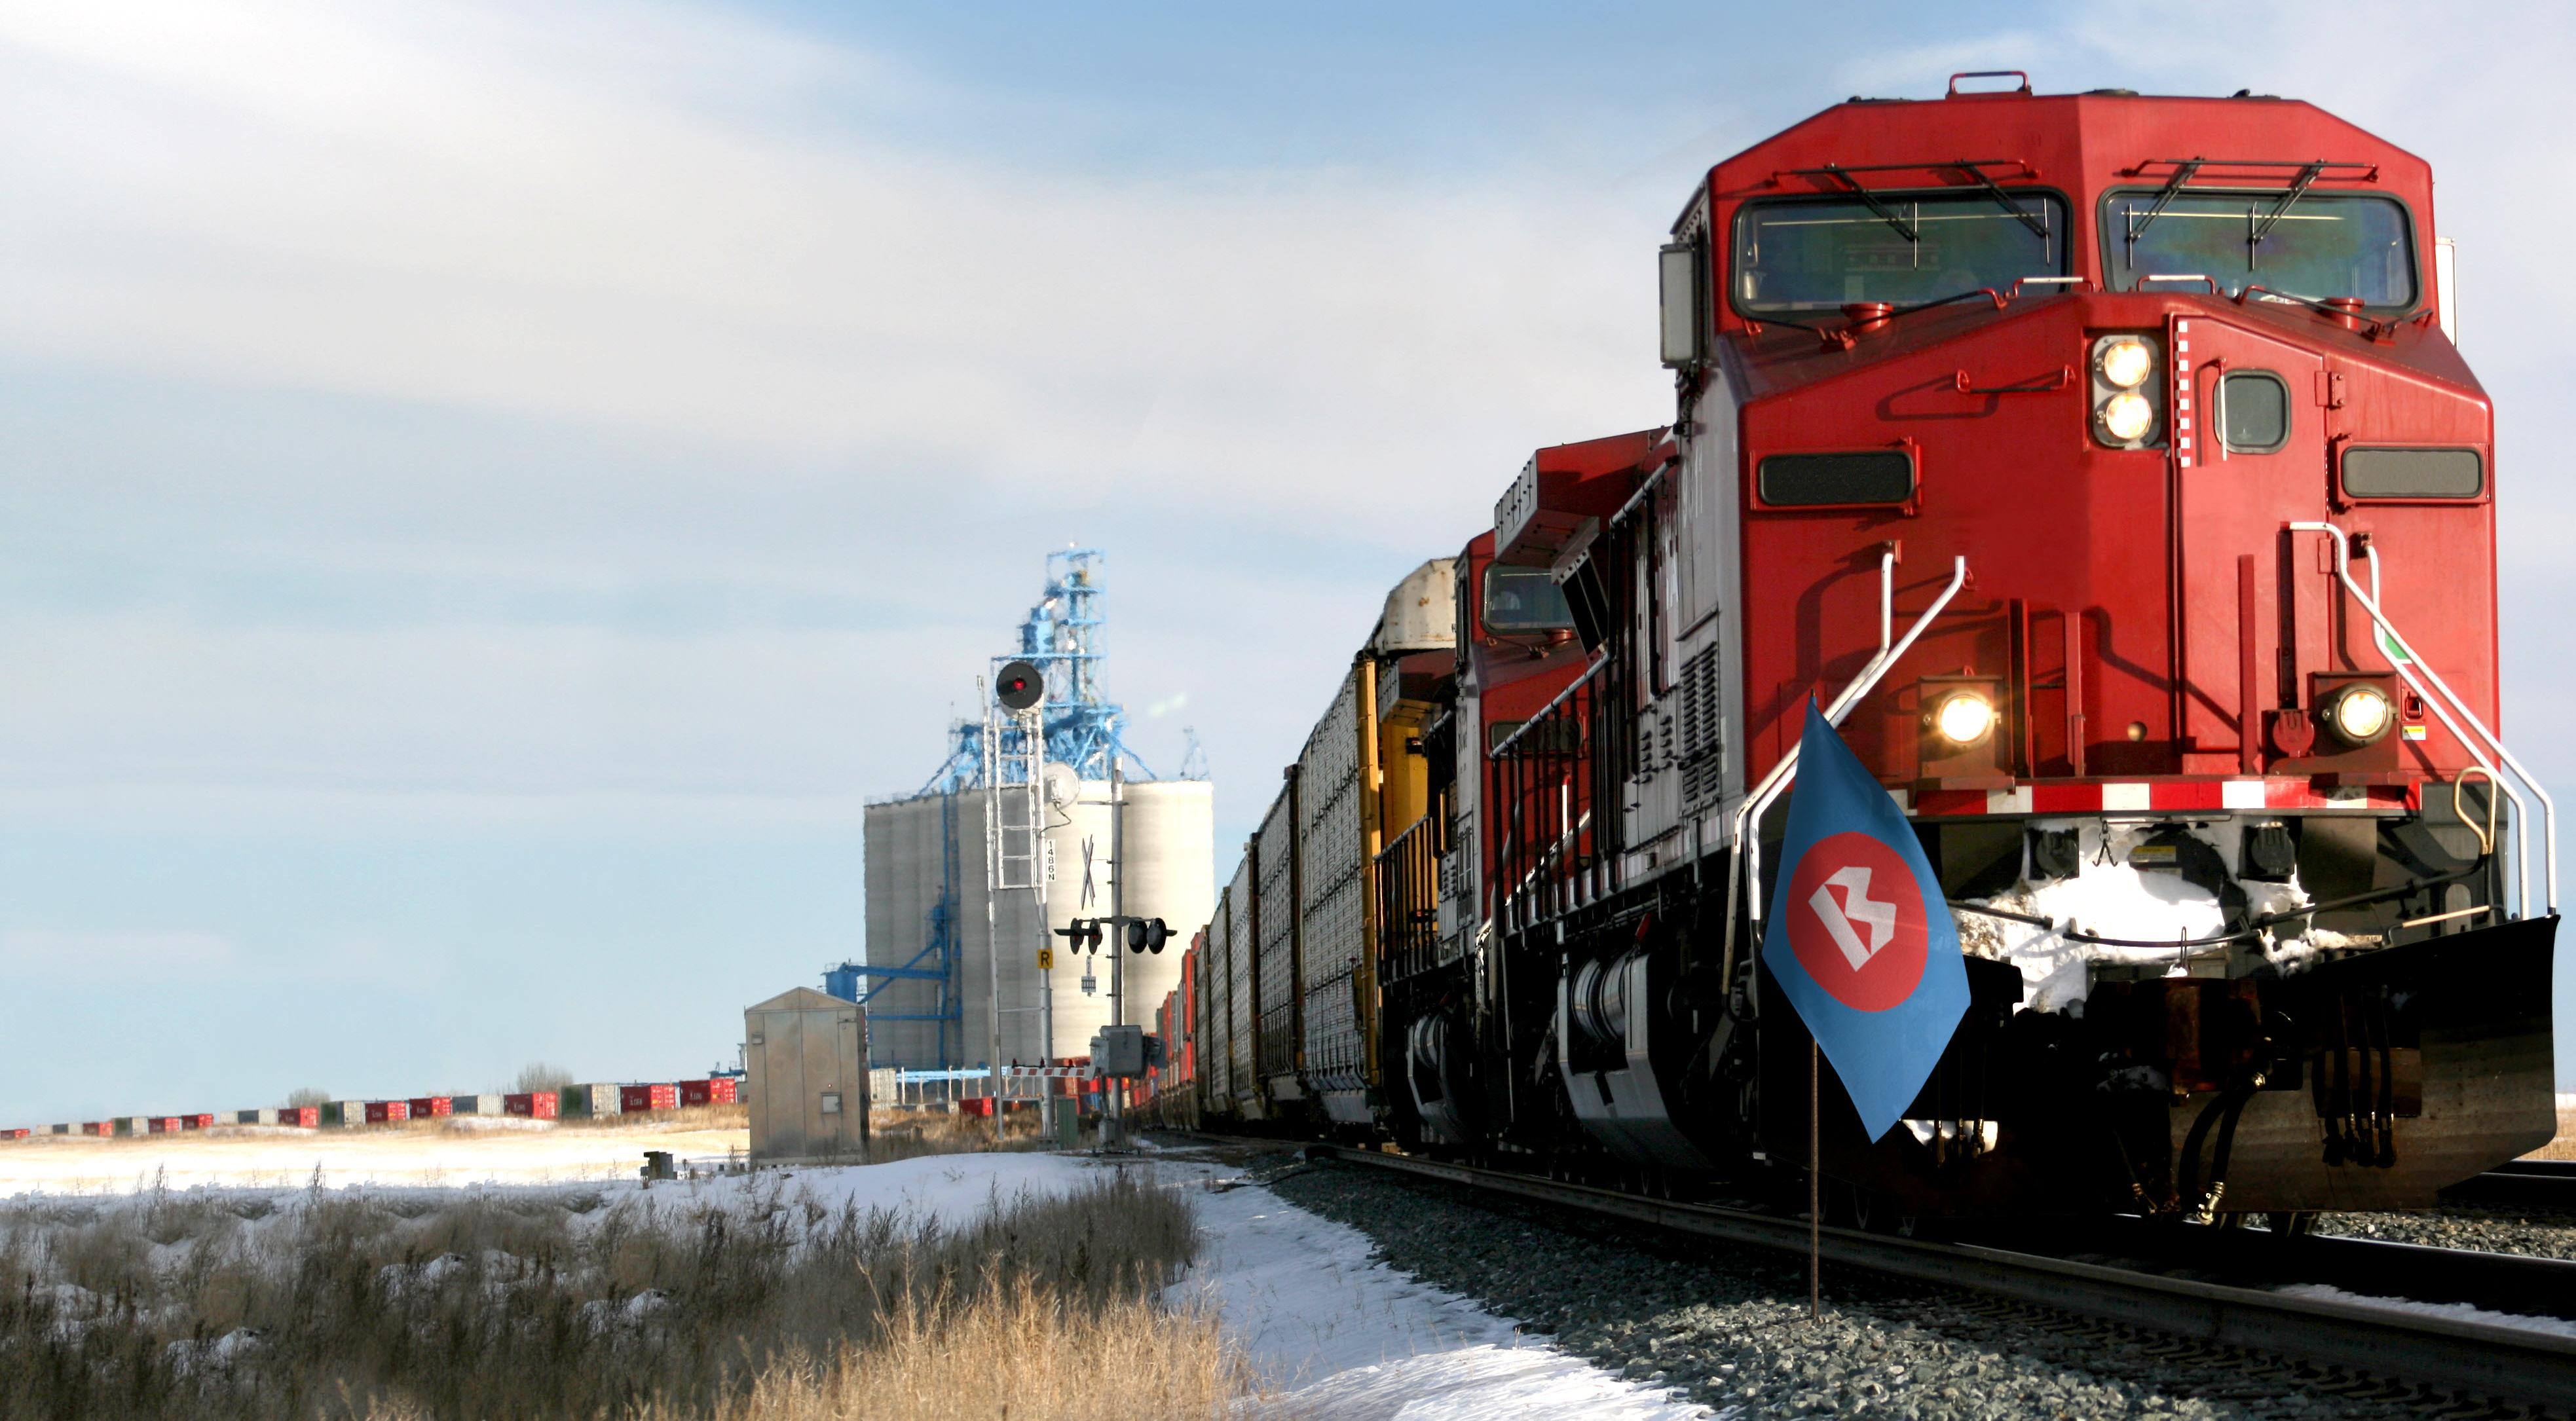 Train bringing goods from Canada to the United States.